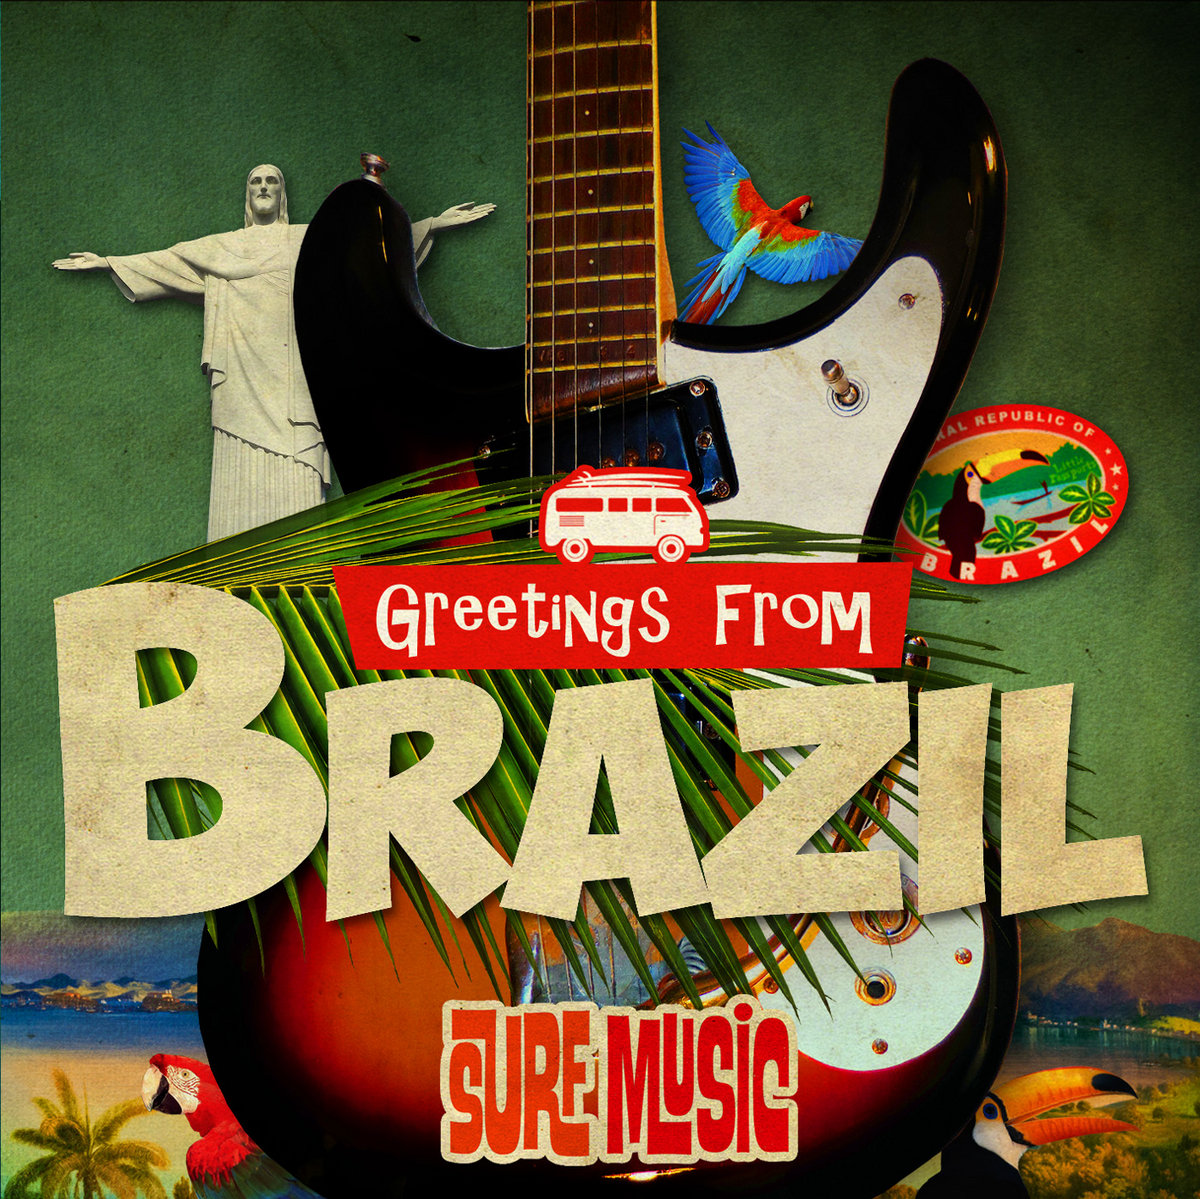 Greetings from brazil reverb brasil greetings from brazil m4hsunfo